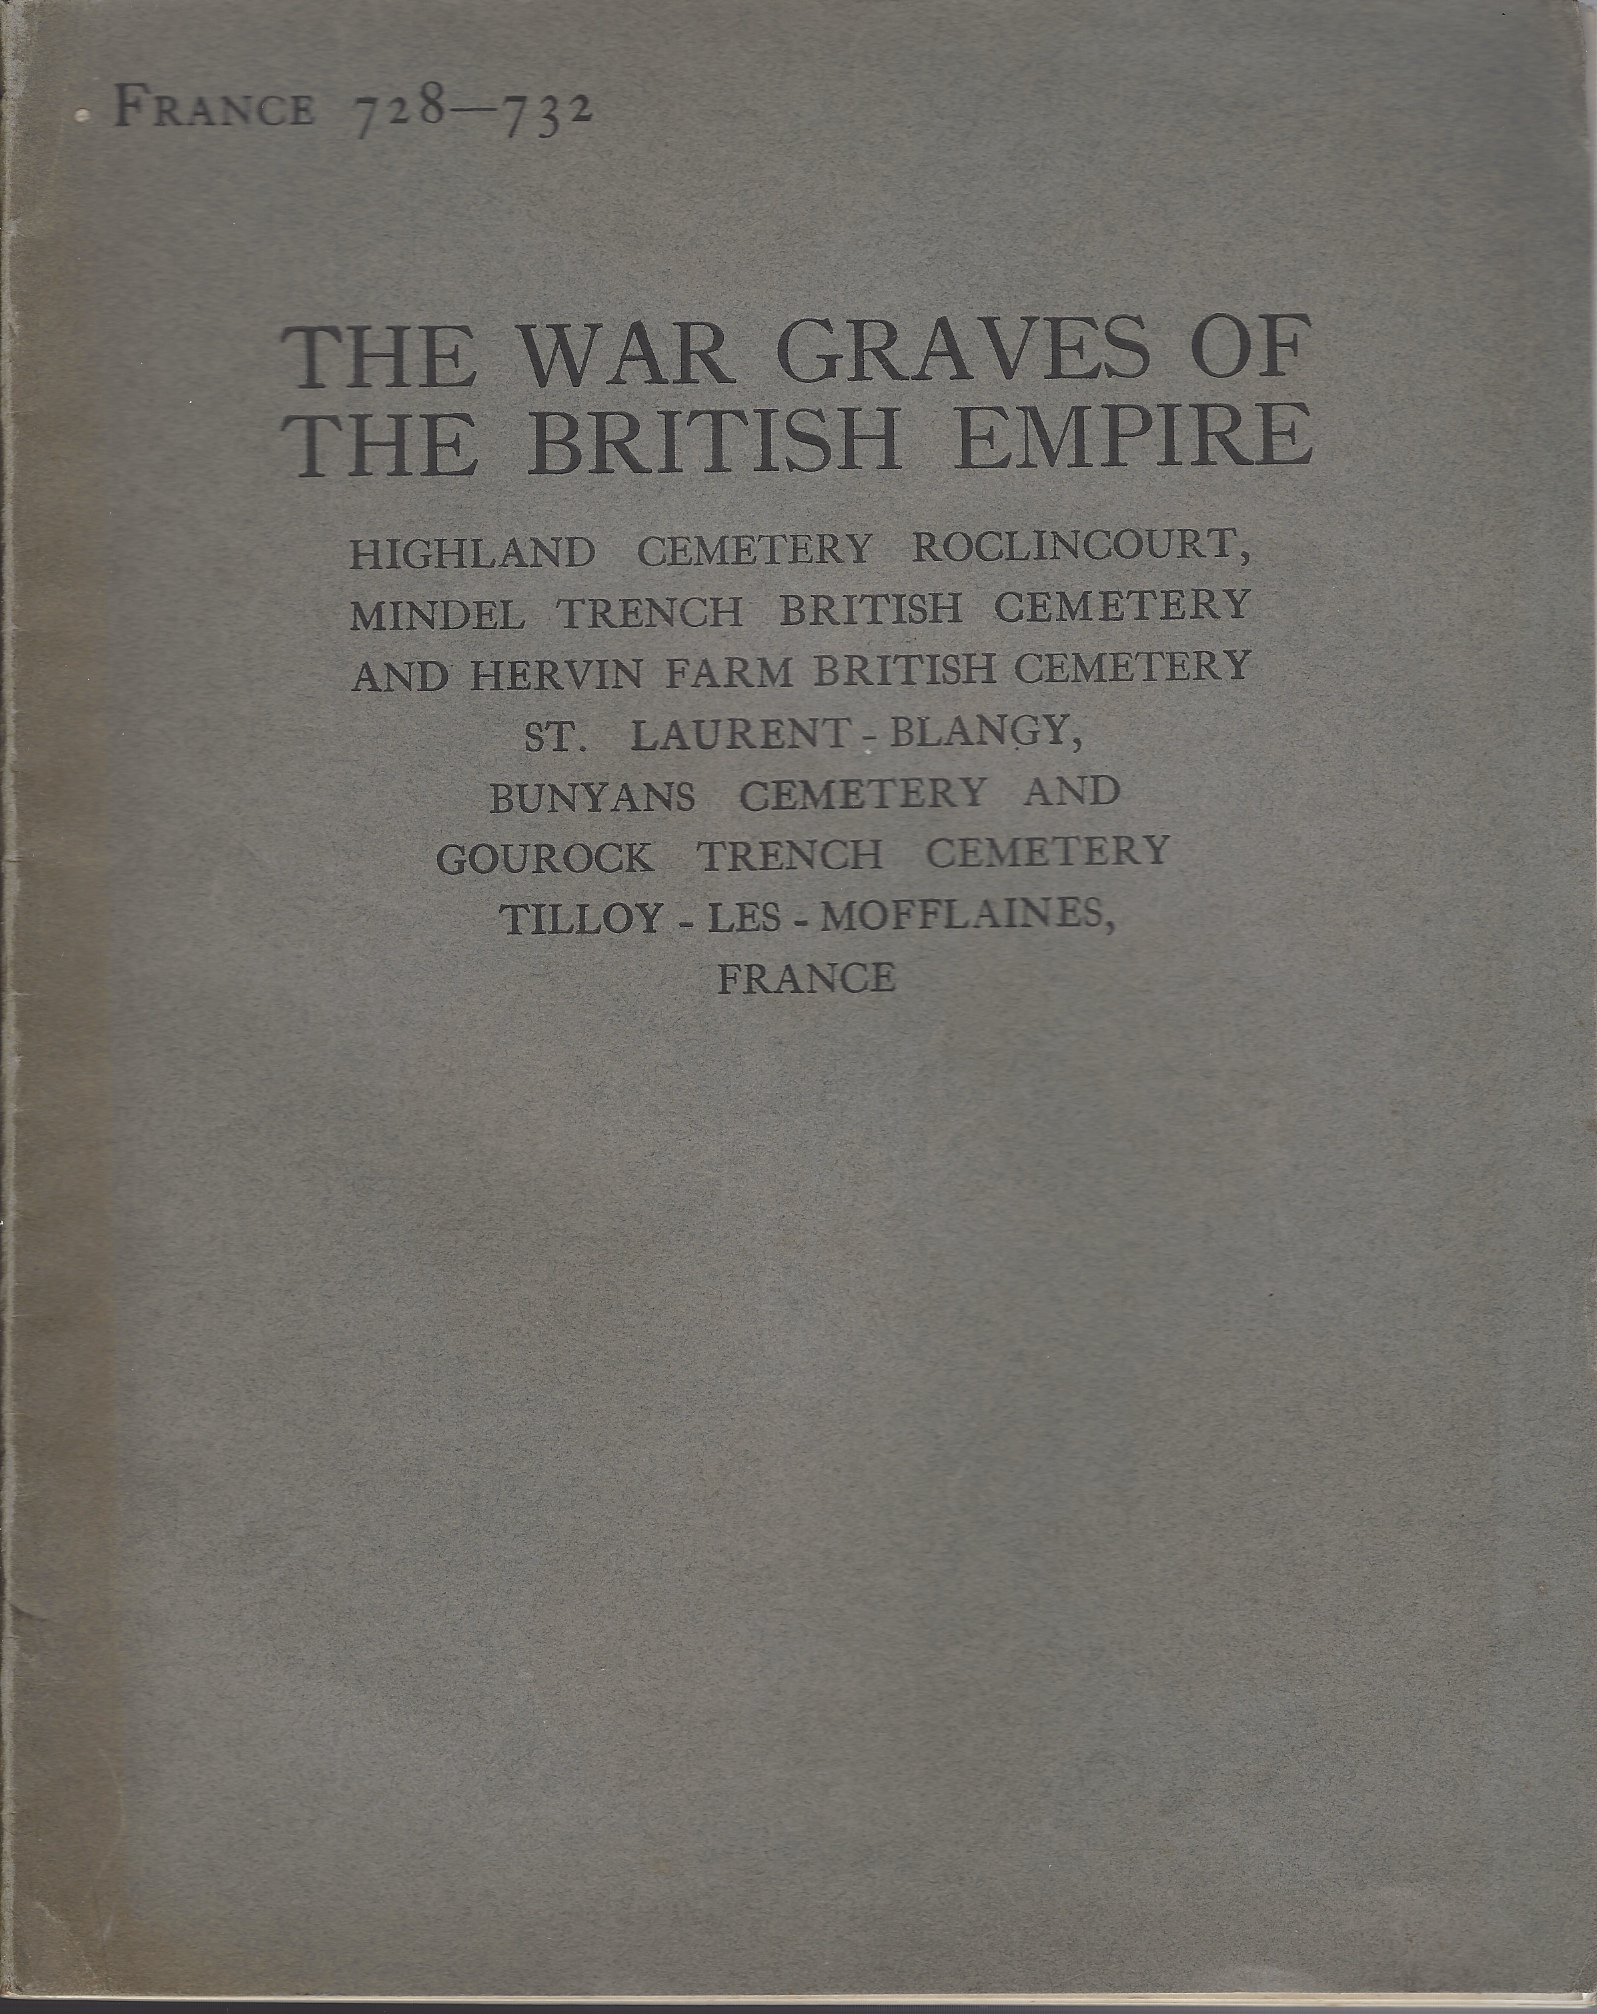 Image for The War Graves of the British Empire: The Register of the names of those who fell in the Great War and are buried in Highland Cemetery, Roclincourt, Mindel Trench and Hervin Farm British Cemeteries, St. Laurent-Blangy, and Bunyans and Gourock...